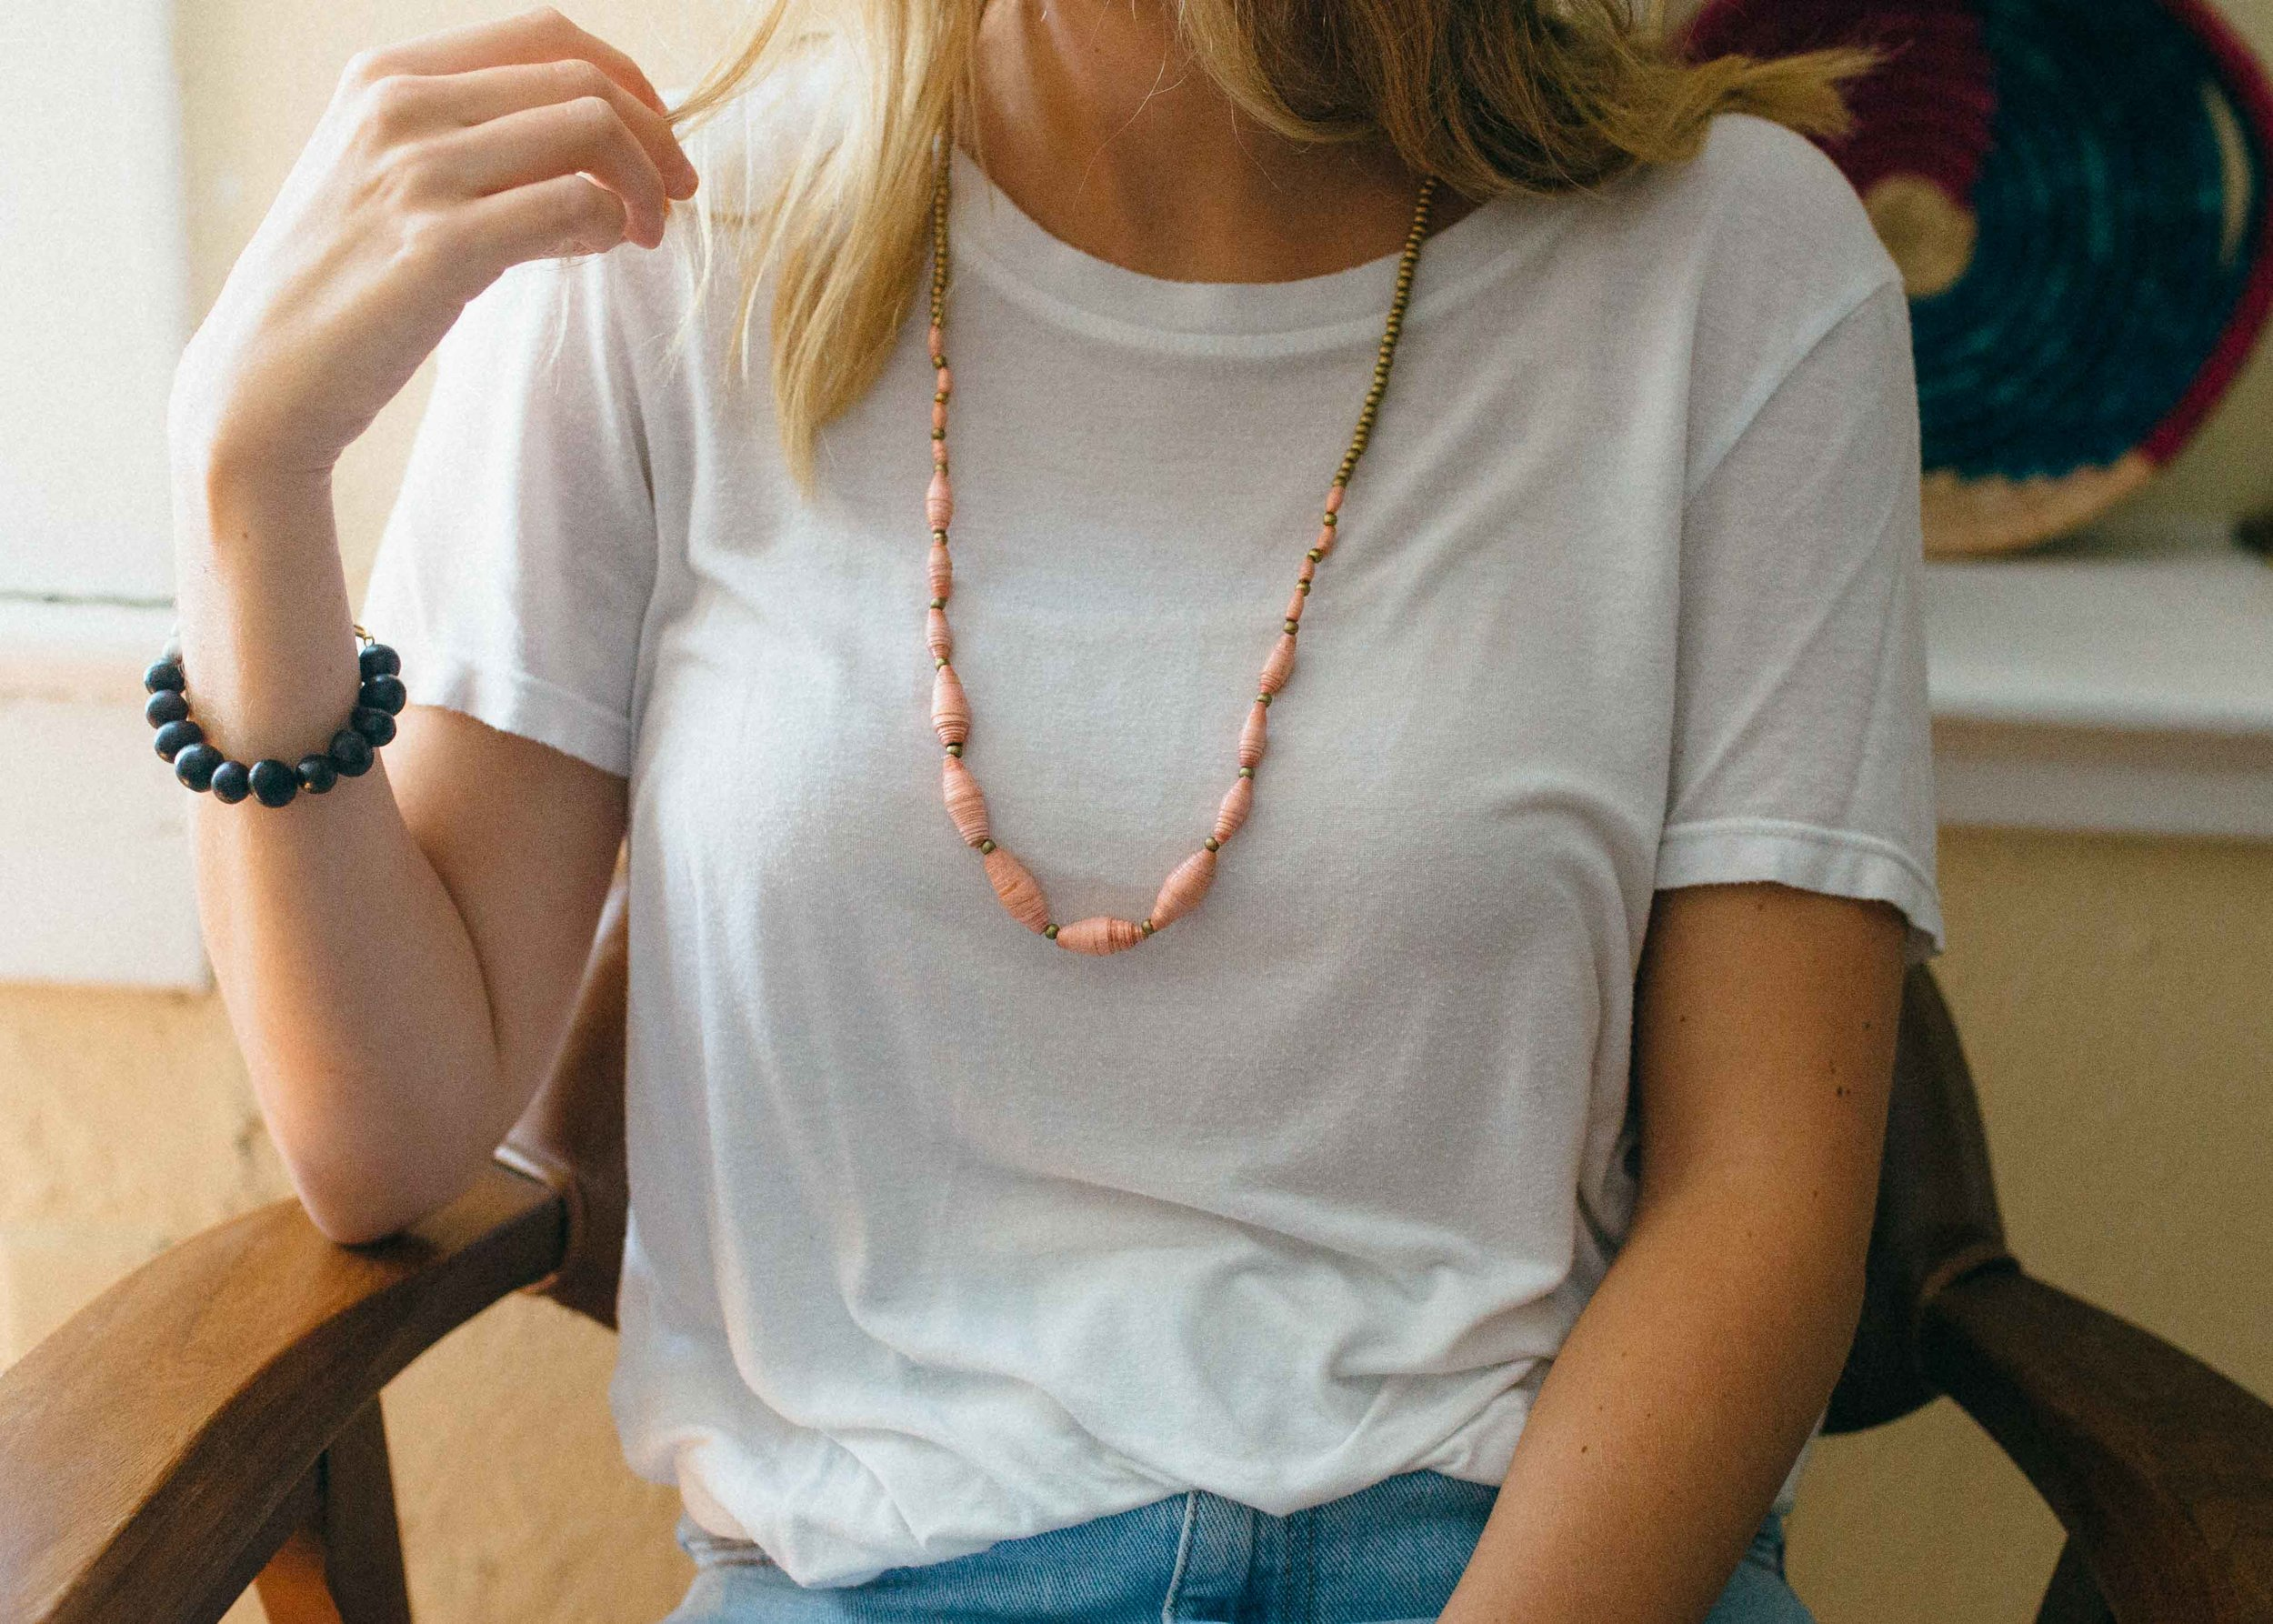 Our model wears the Amora necklace and Miriam bracelet.